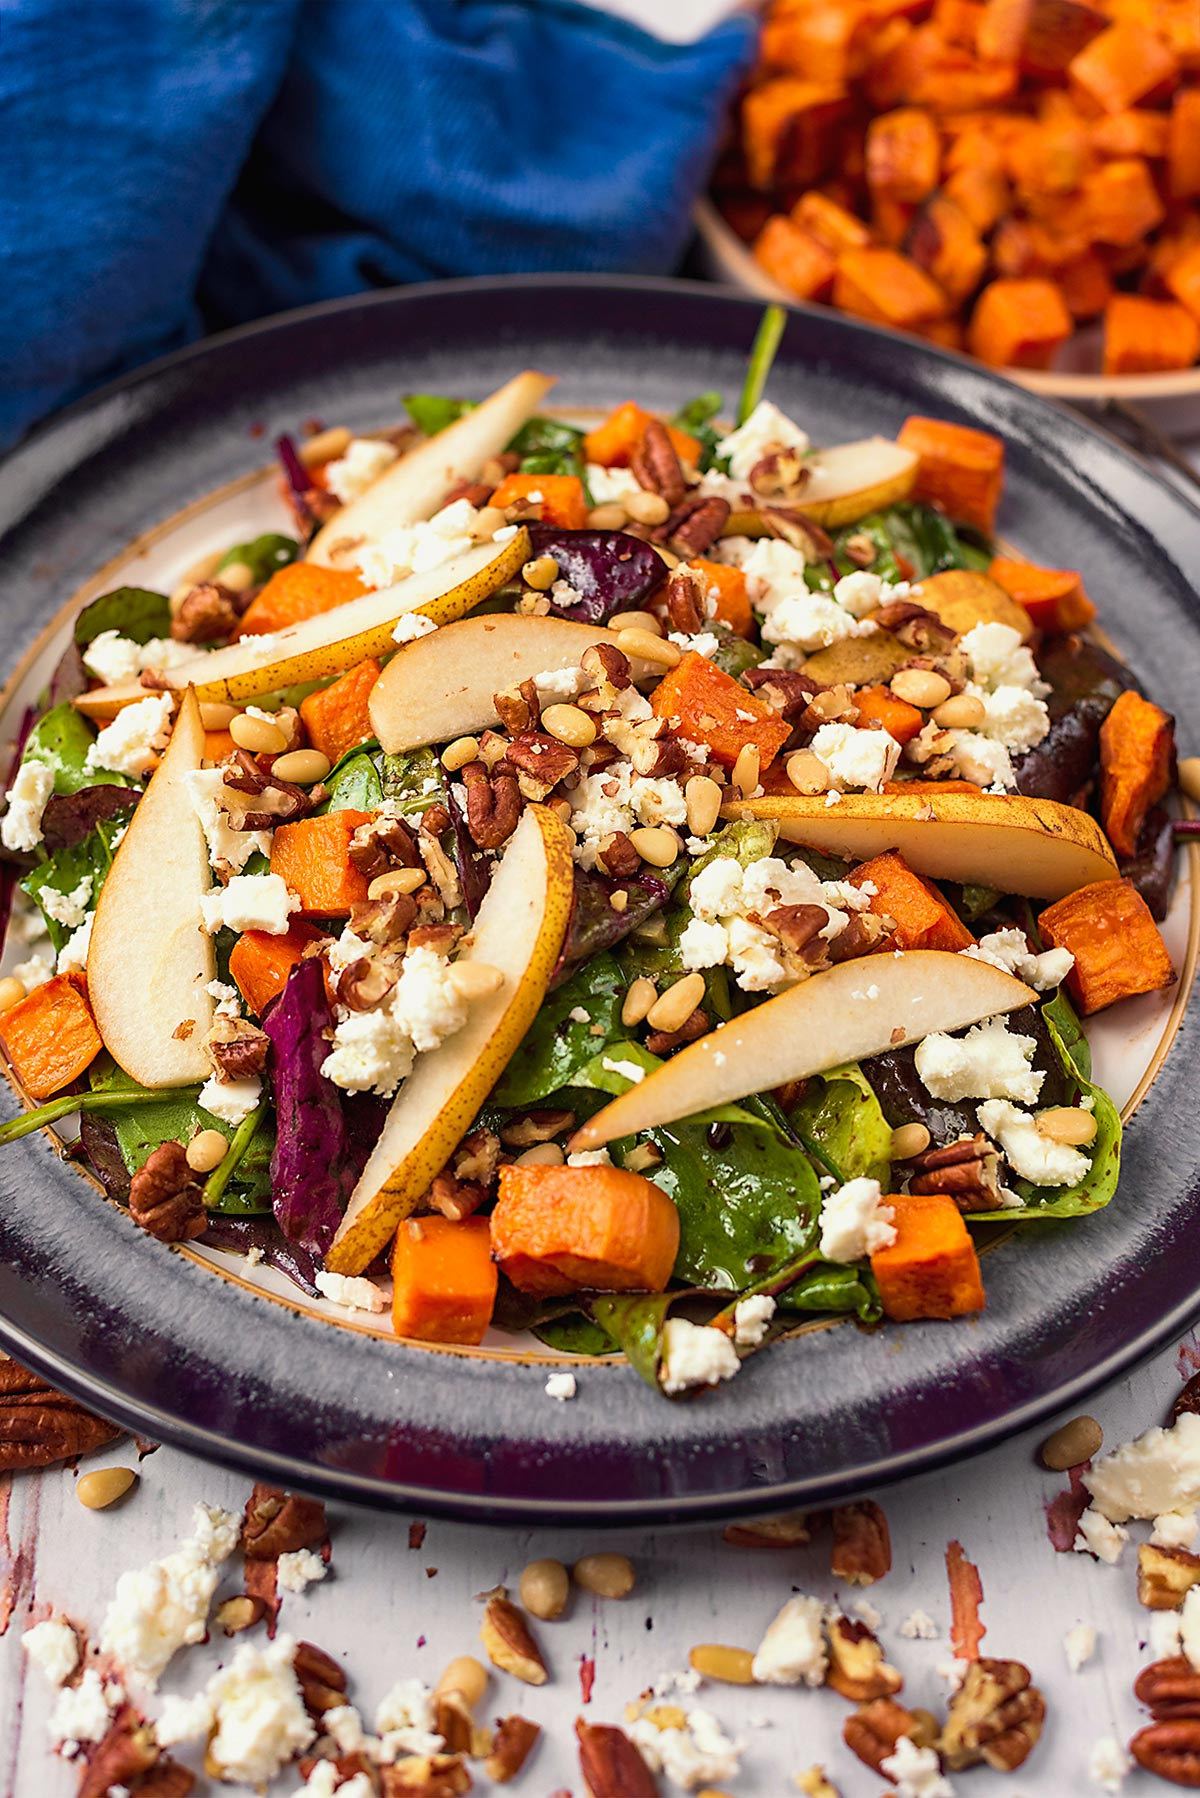 A plate of salad topped with sliced pears and cubes of sweet potato